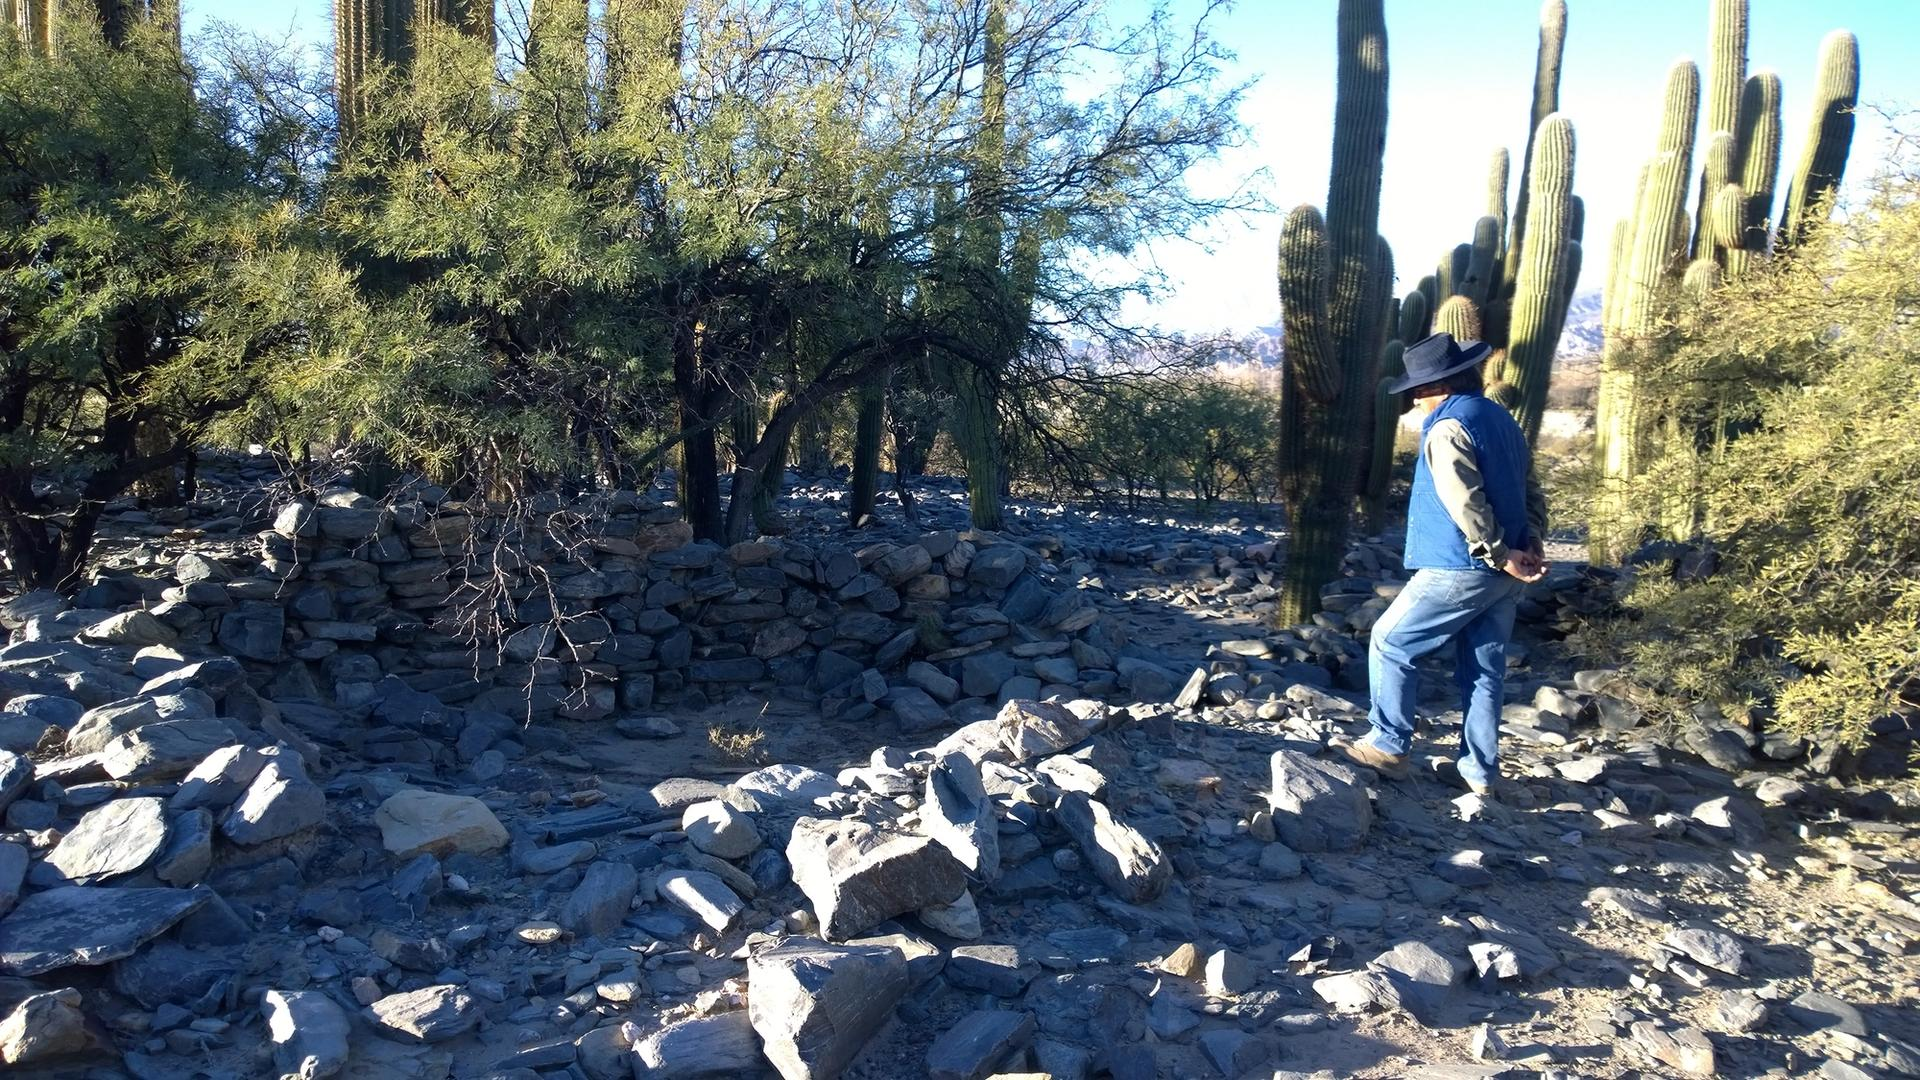 Archaeologists discovered the Cerro Quemado site with the help of a local high school student Photo: Catriel Greco